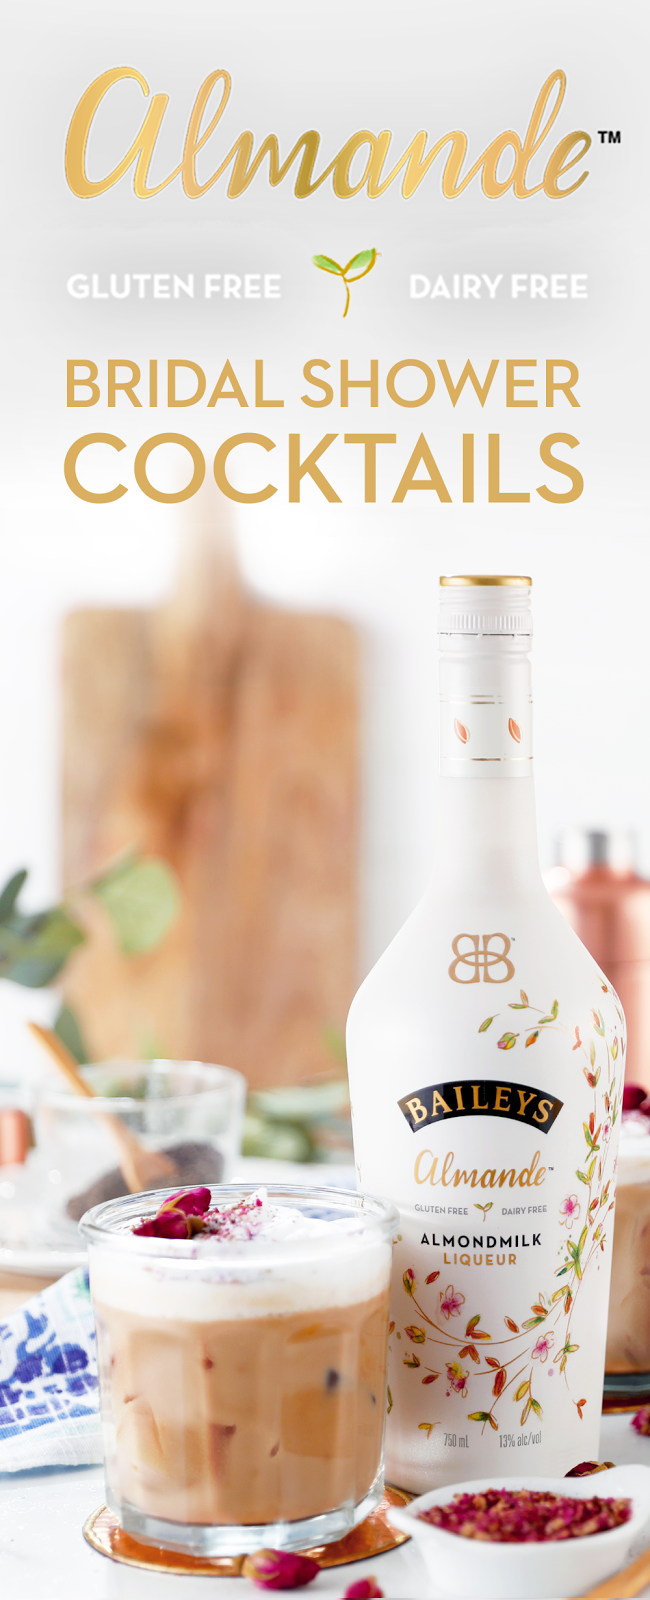 Baileys Almande is not only a great gift, but the perfect liqueur for any  cocktail. Grab your bottle today to make bridal shower season a breeze, ...